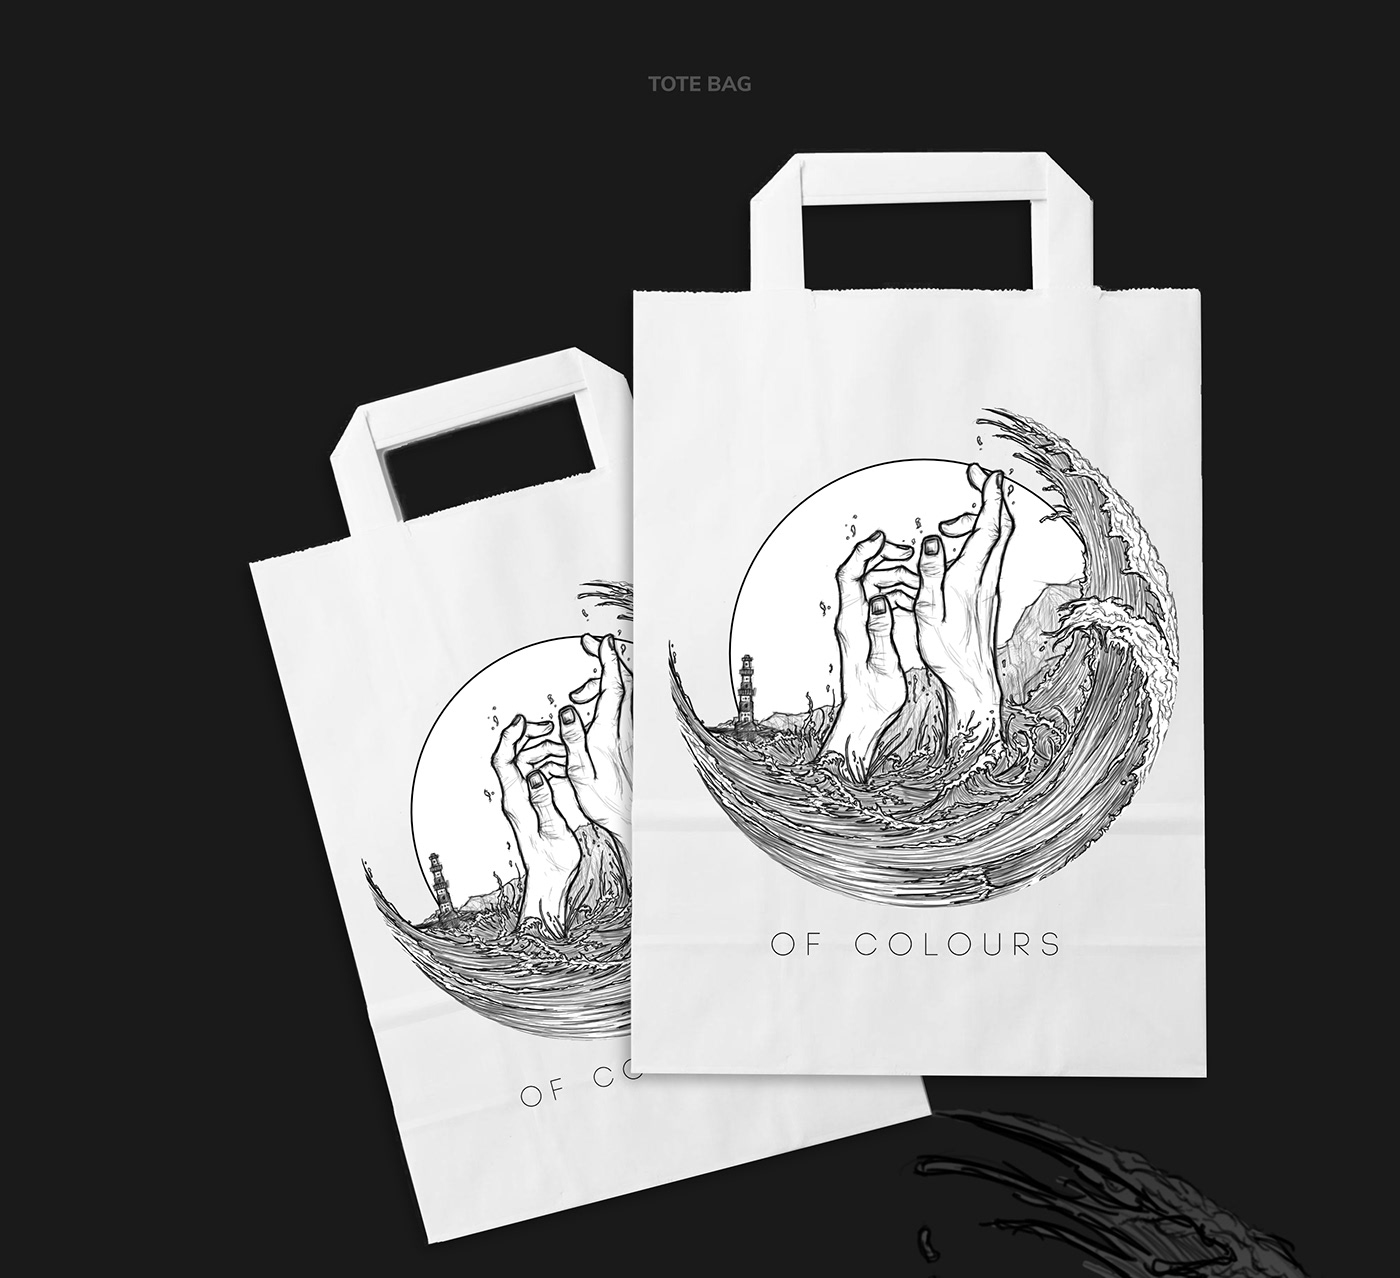 Of Colours // Tote Bag